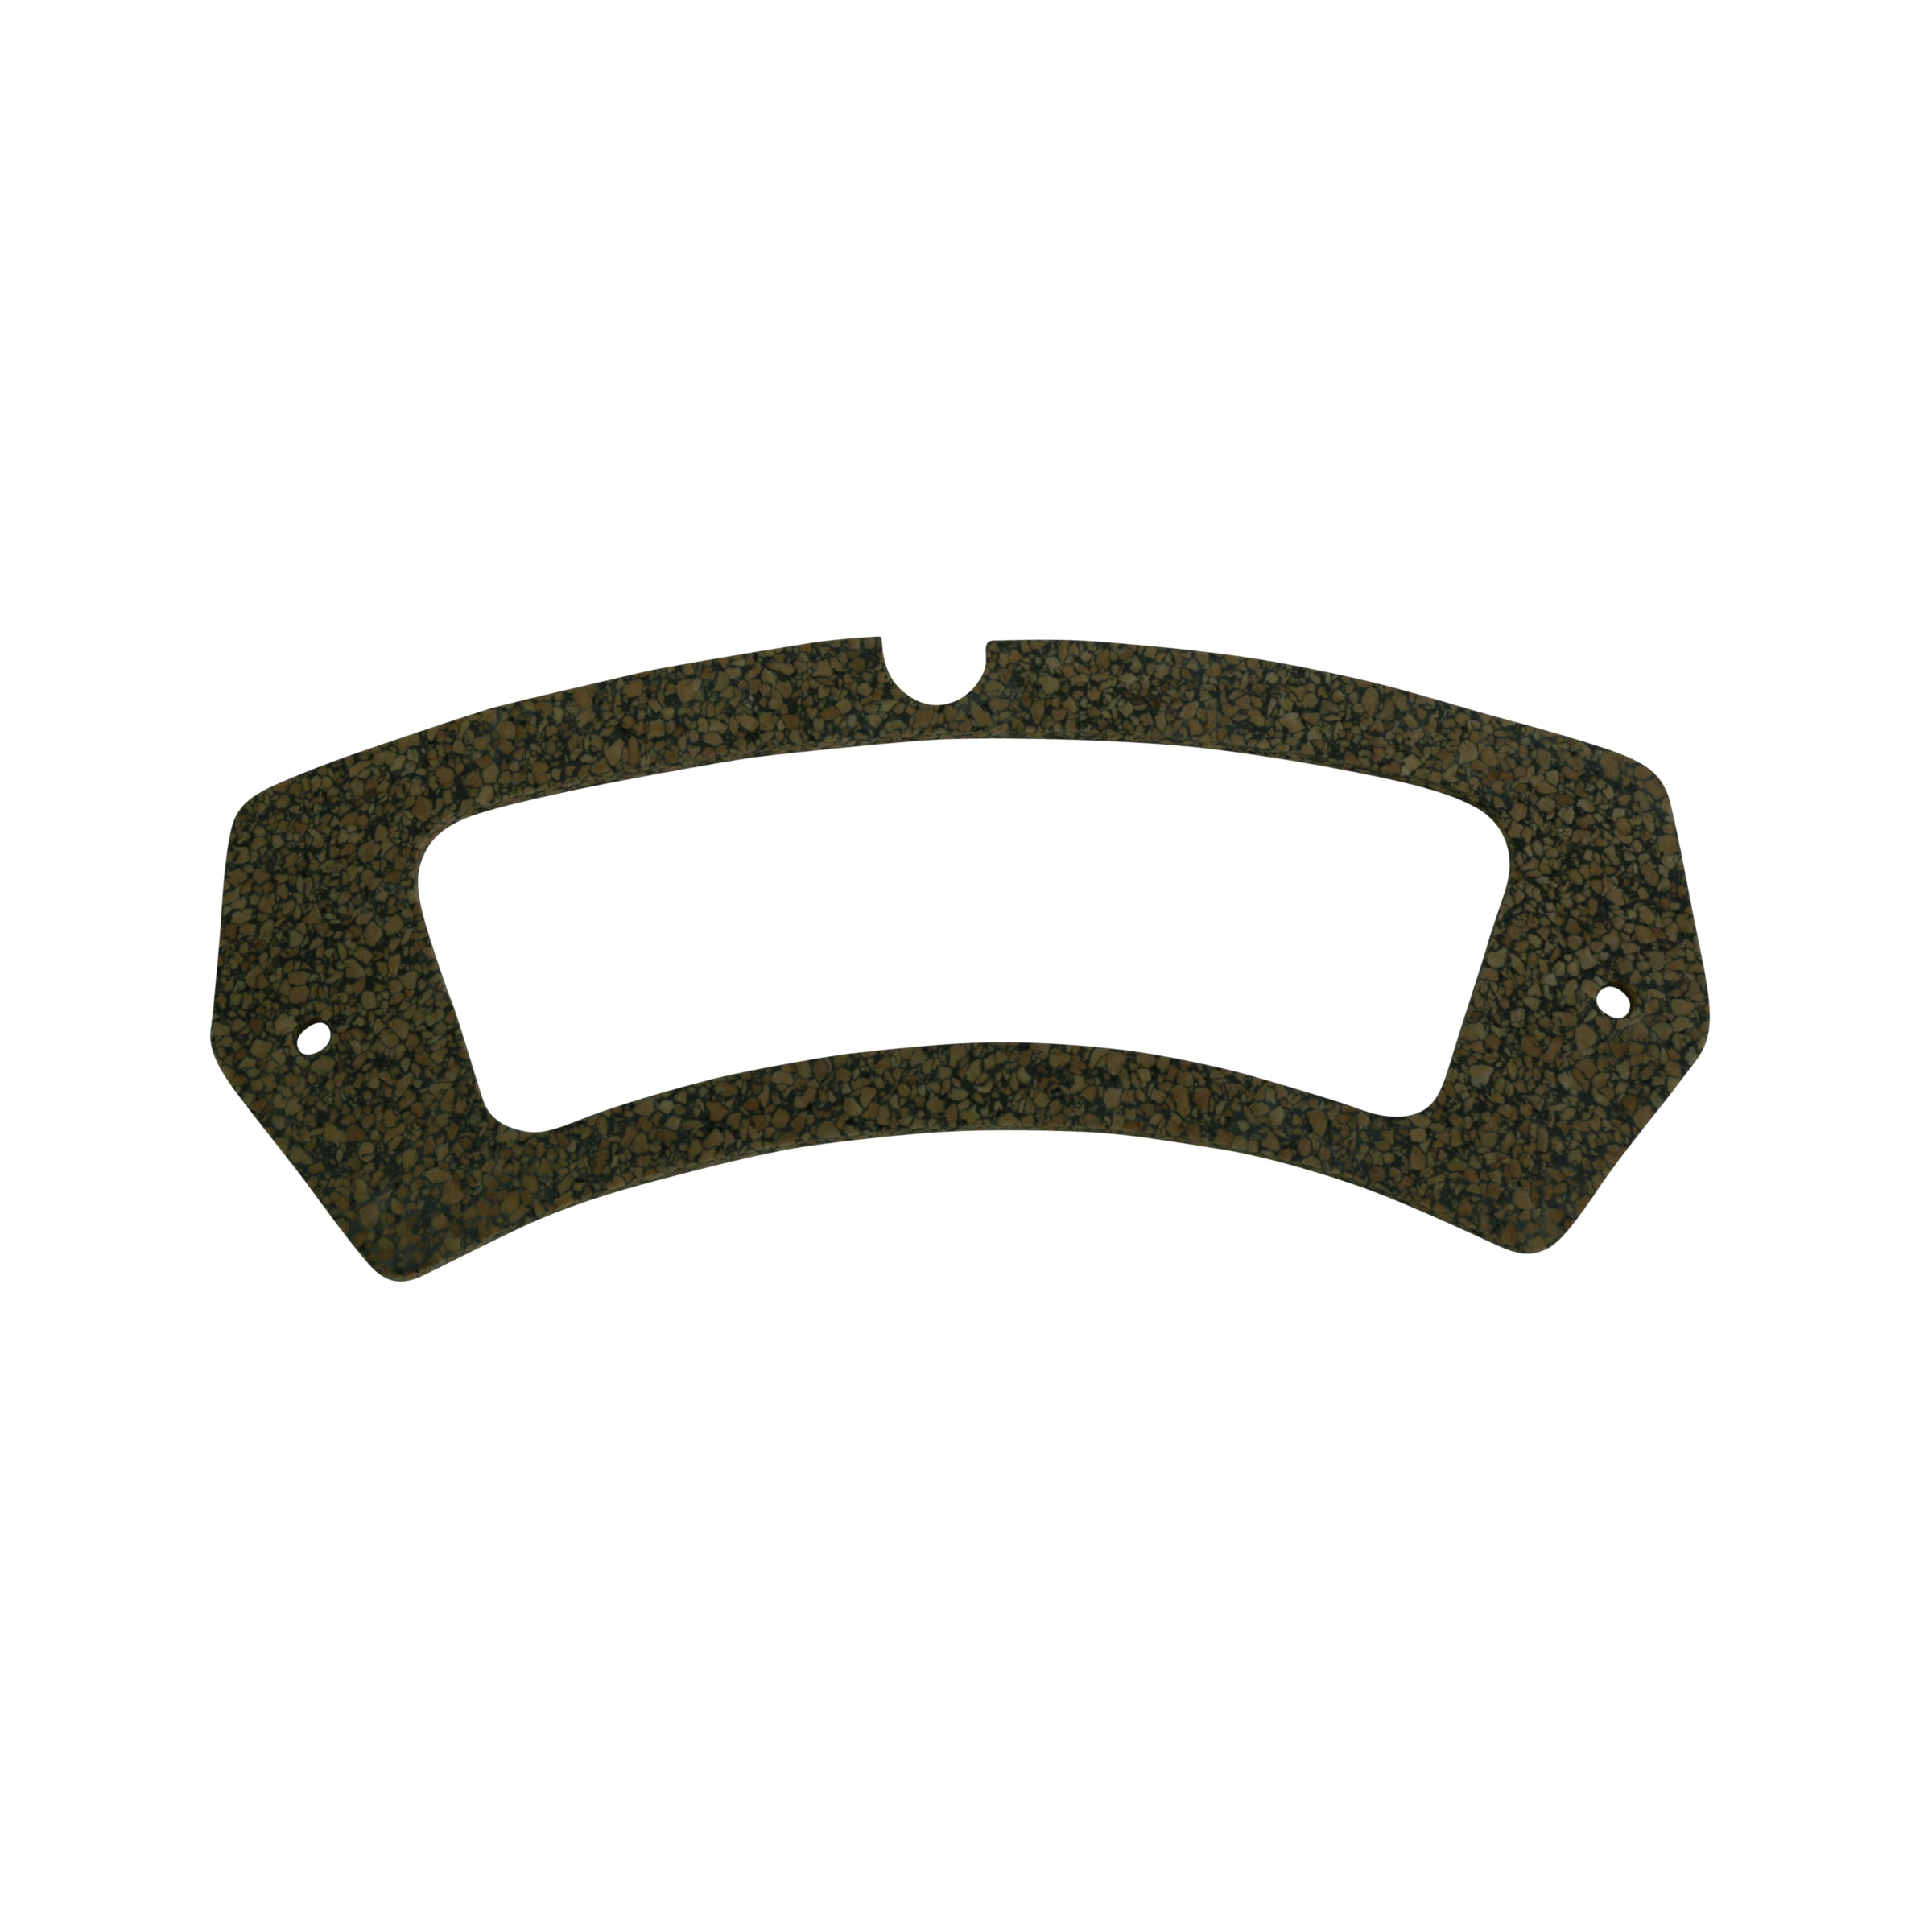 License Light Lens Gasket • 1933-36 Passenger & 1946-47 Pickup